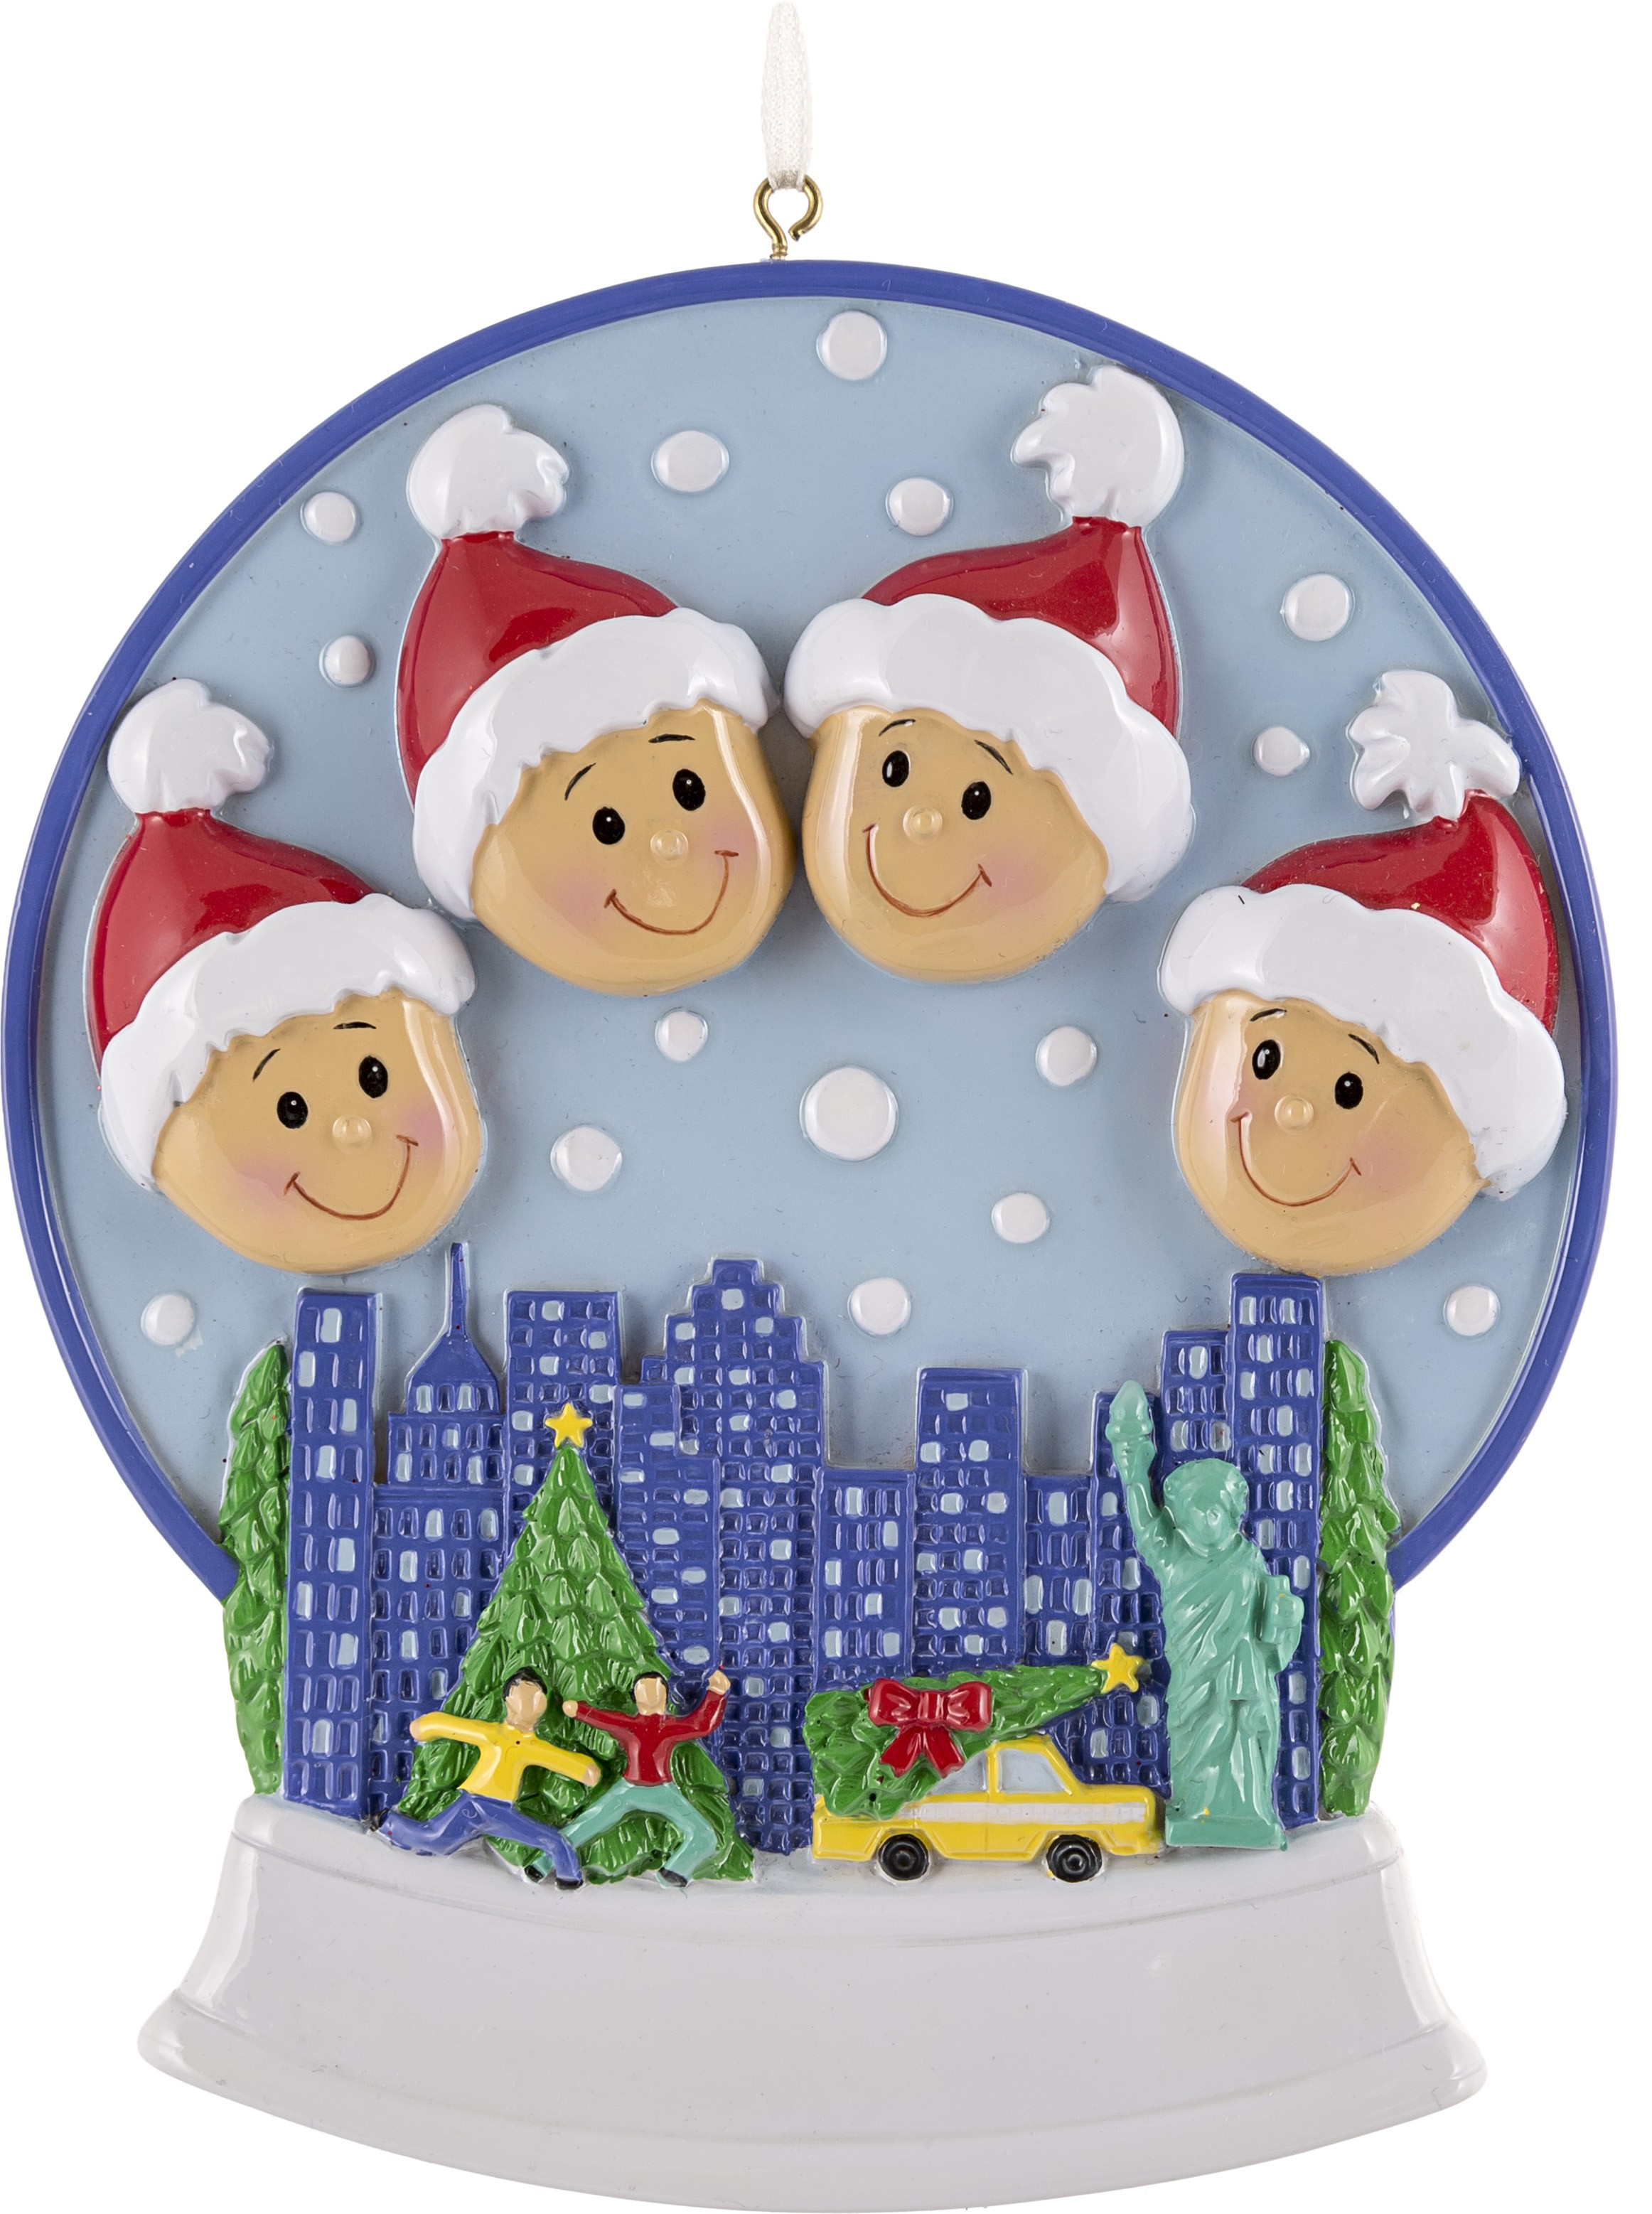 Snow Globe Family-4 Personalized Christmas Ornament